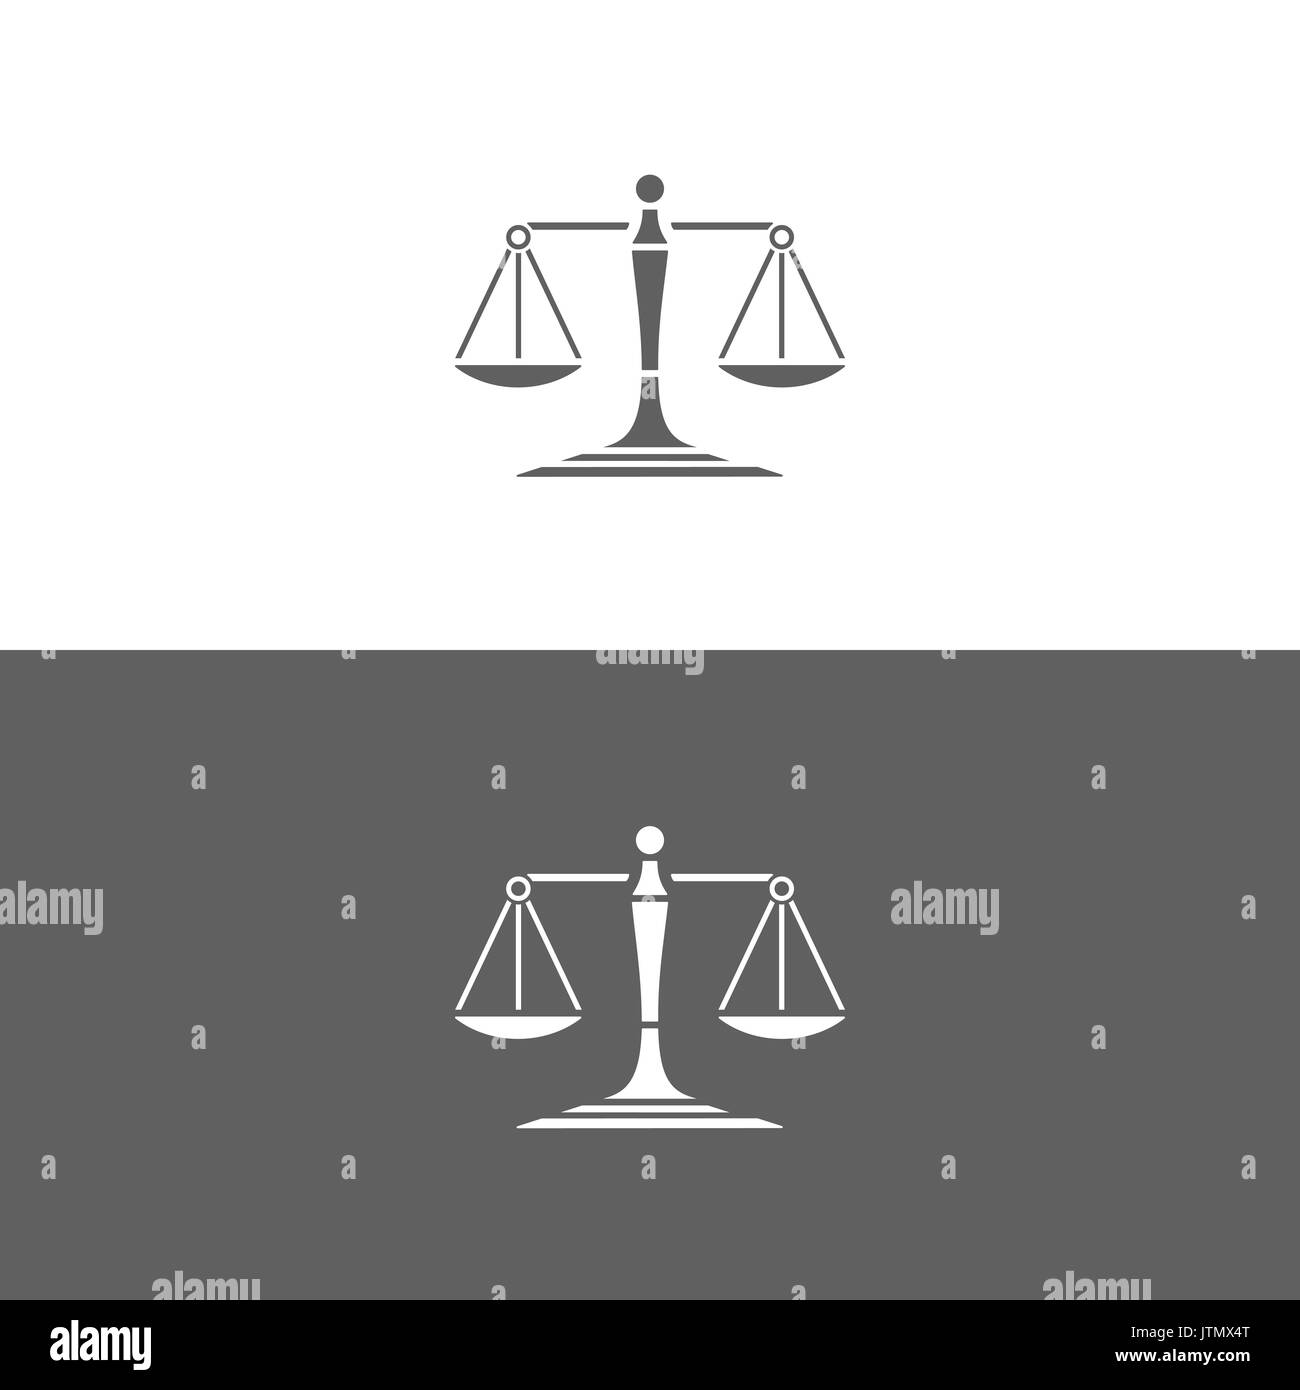 Scales of justice icon on white and dark backgrounds - Stock Image